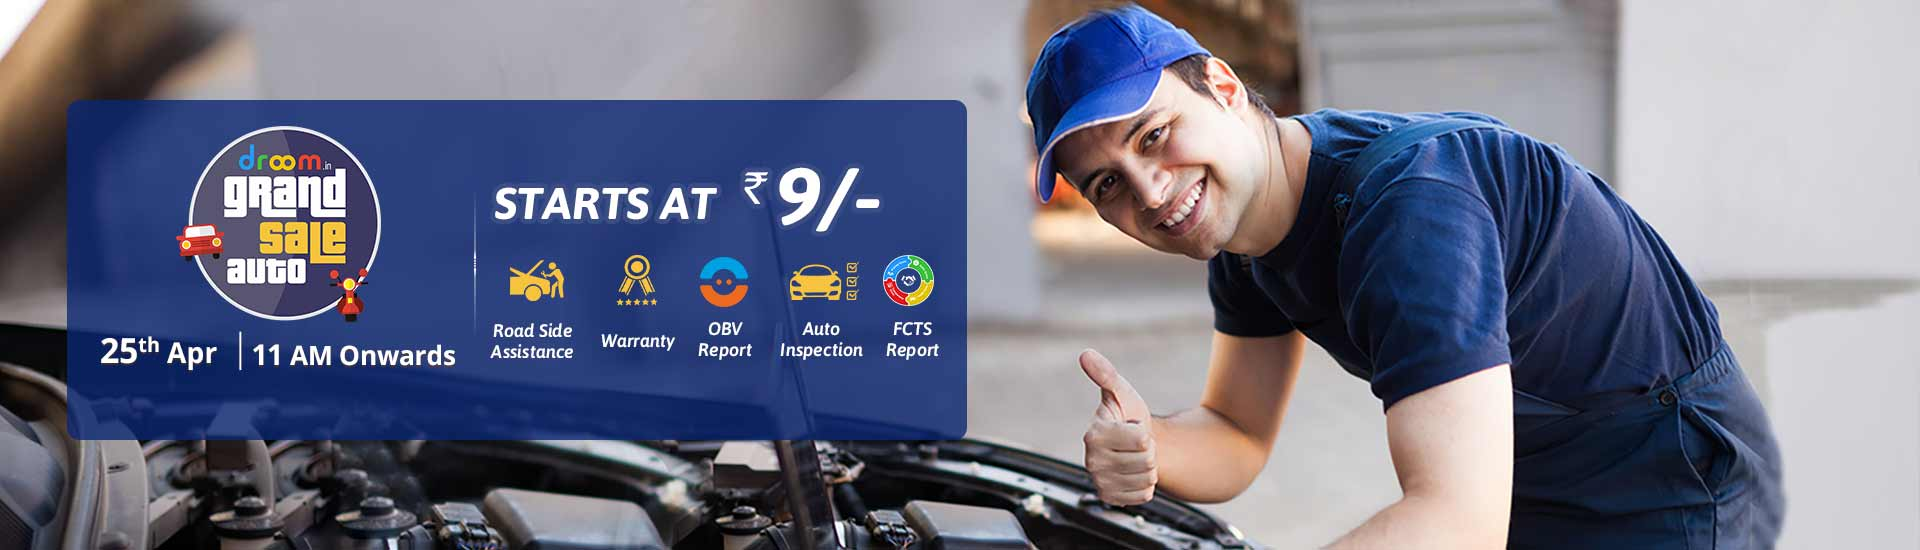 Droom Auto Service Sale Rs.9 or Rs.99